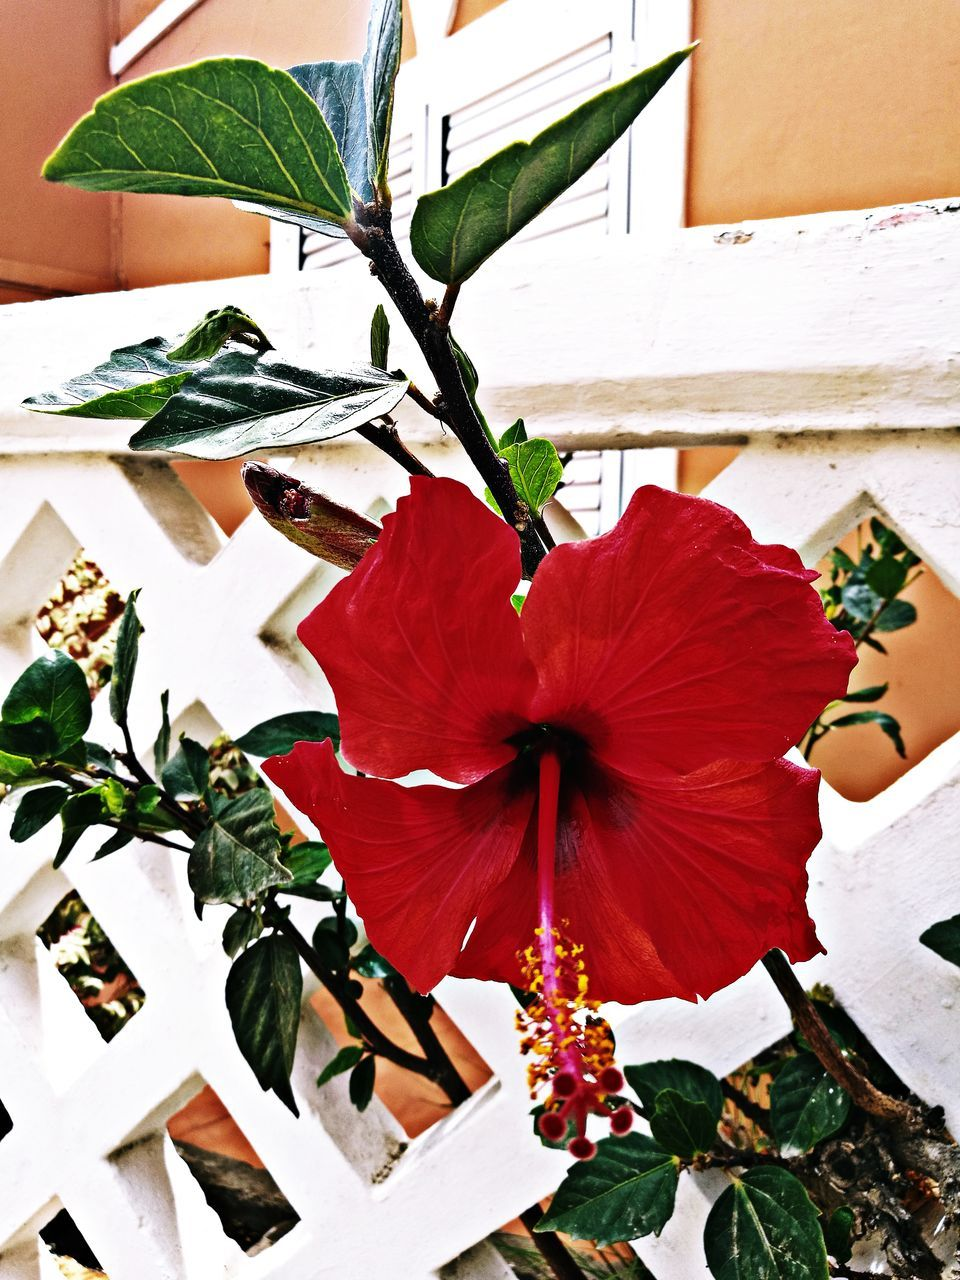 flower, leaf, fragility, petal, no people, plant, growth, red, flower head, day, close-up, freshness, nature, beauty in nature, outdoors, blooming, hibiscus, architecture